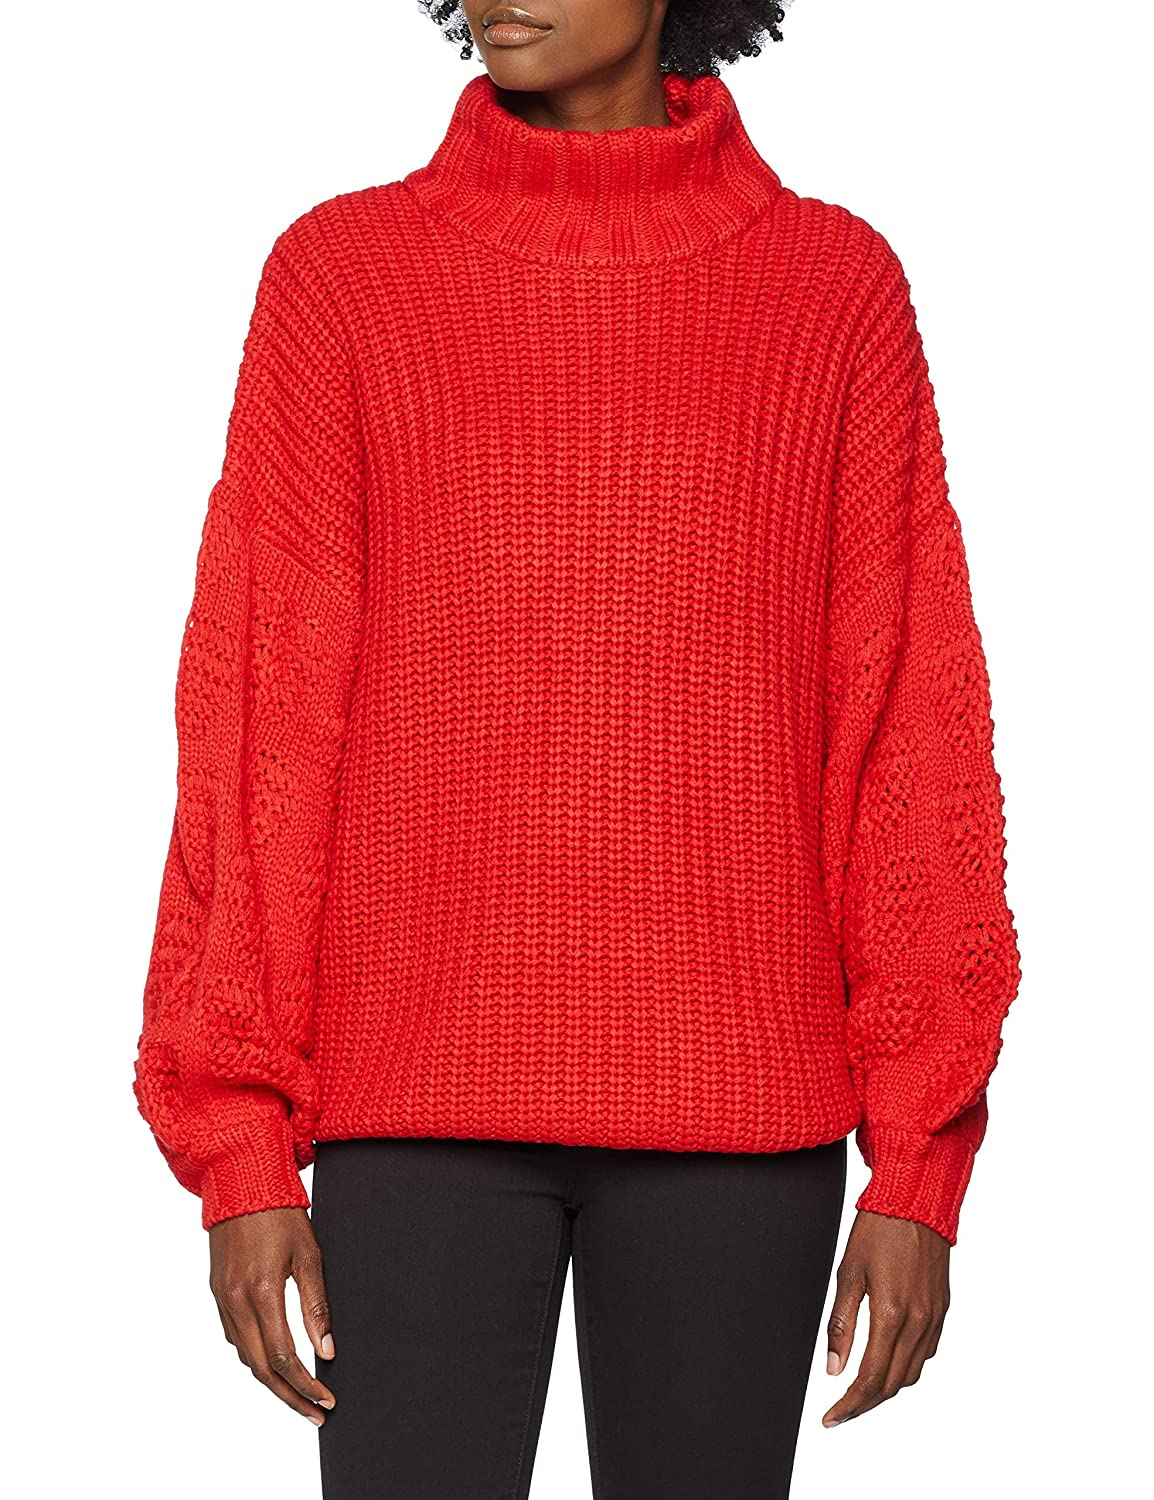 Lost Ink Super Stitch Sleeve Jumper Jersey para Mujer